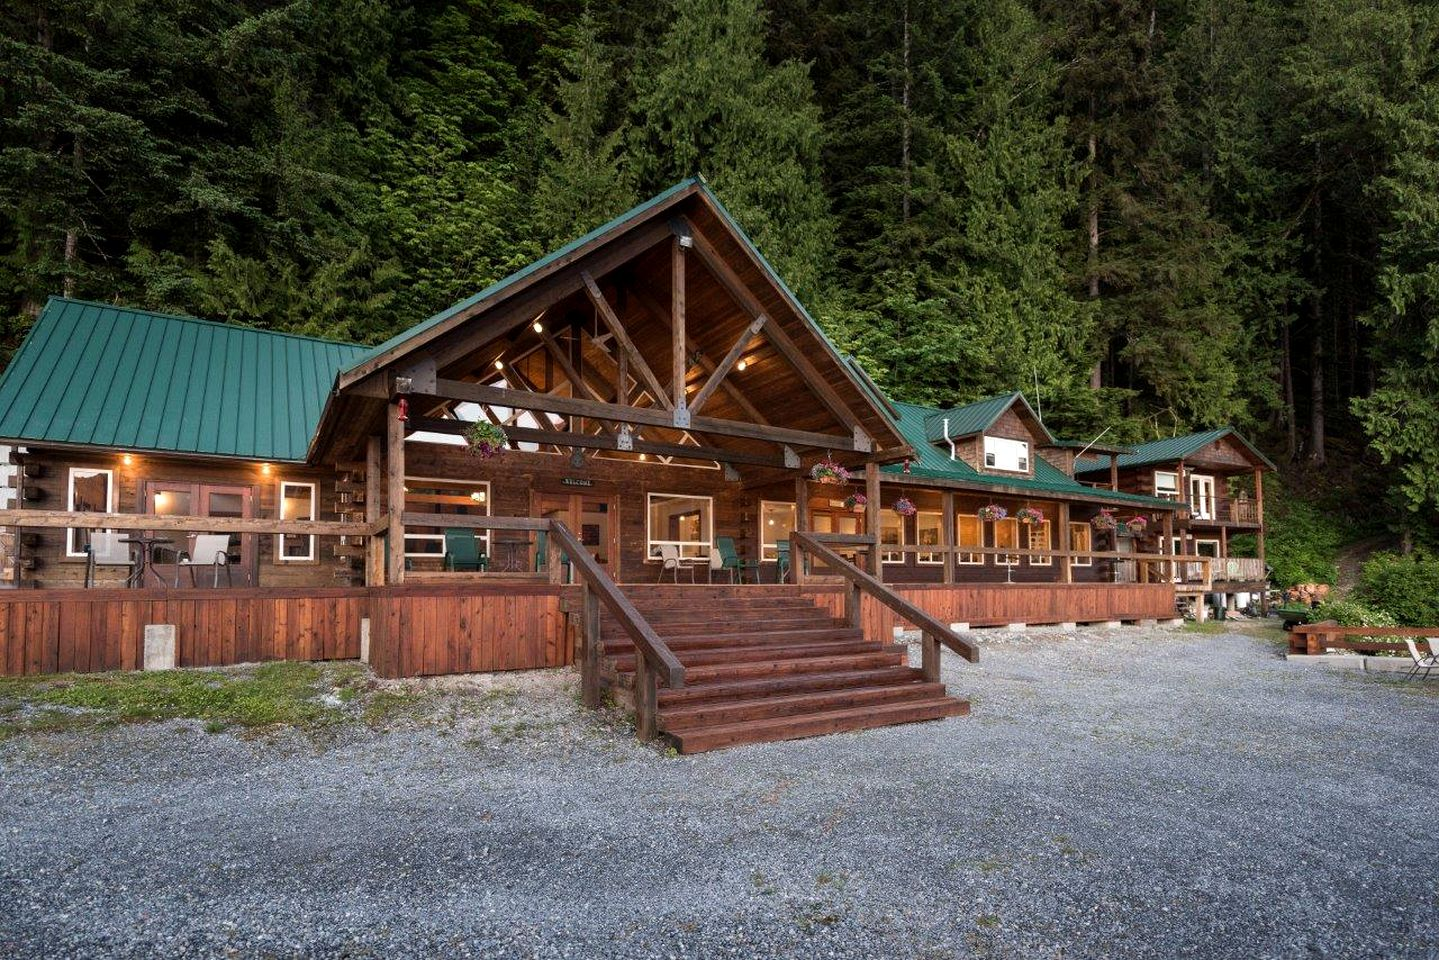 Nature Lodges (Powell River, British Columbia, Canada)